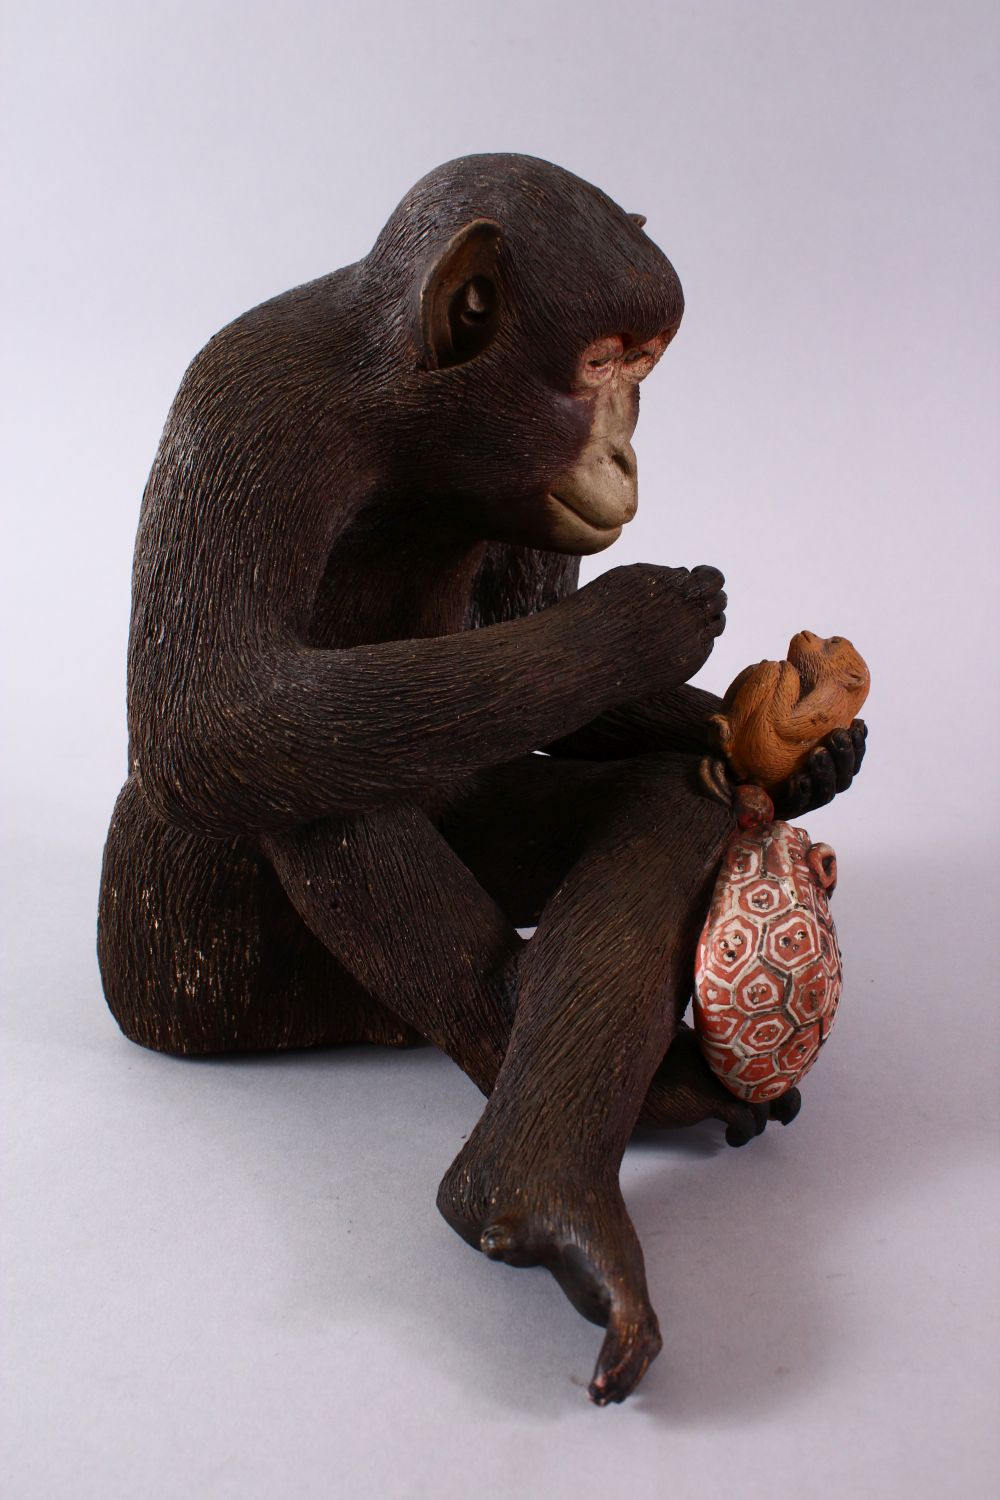 A JAPANESE POTTERY / TERRACOTTA MODEL OF A SEATED MONKEY, the monkey in a seated position holding - Image 3 of 10